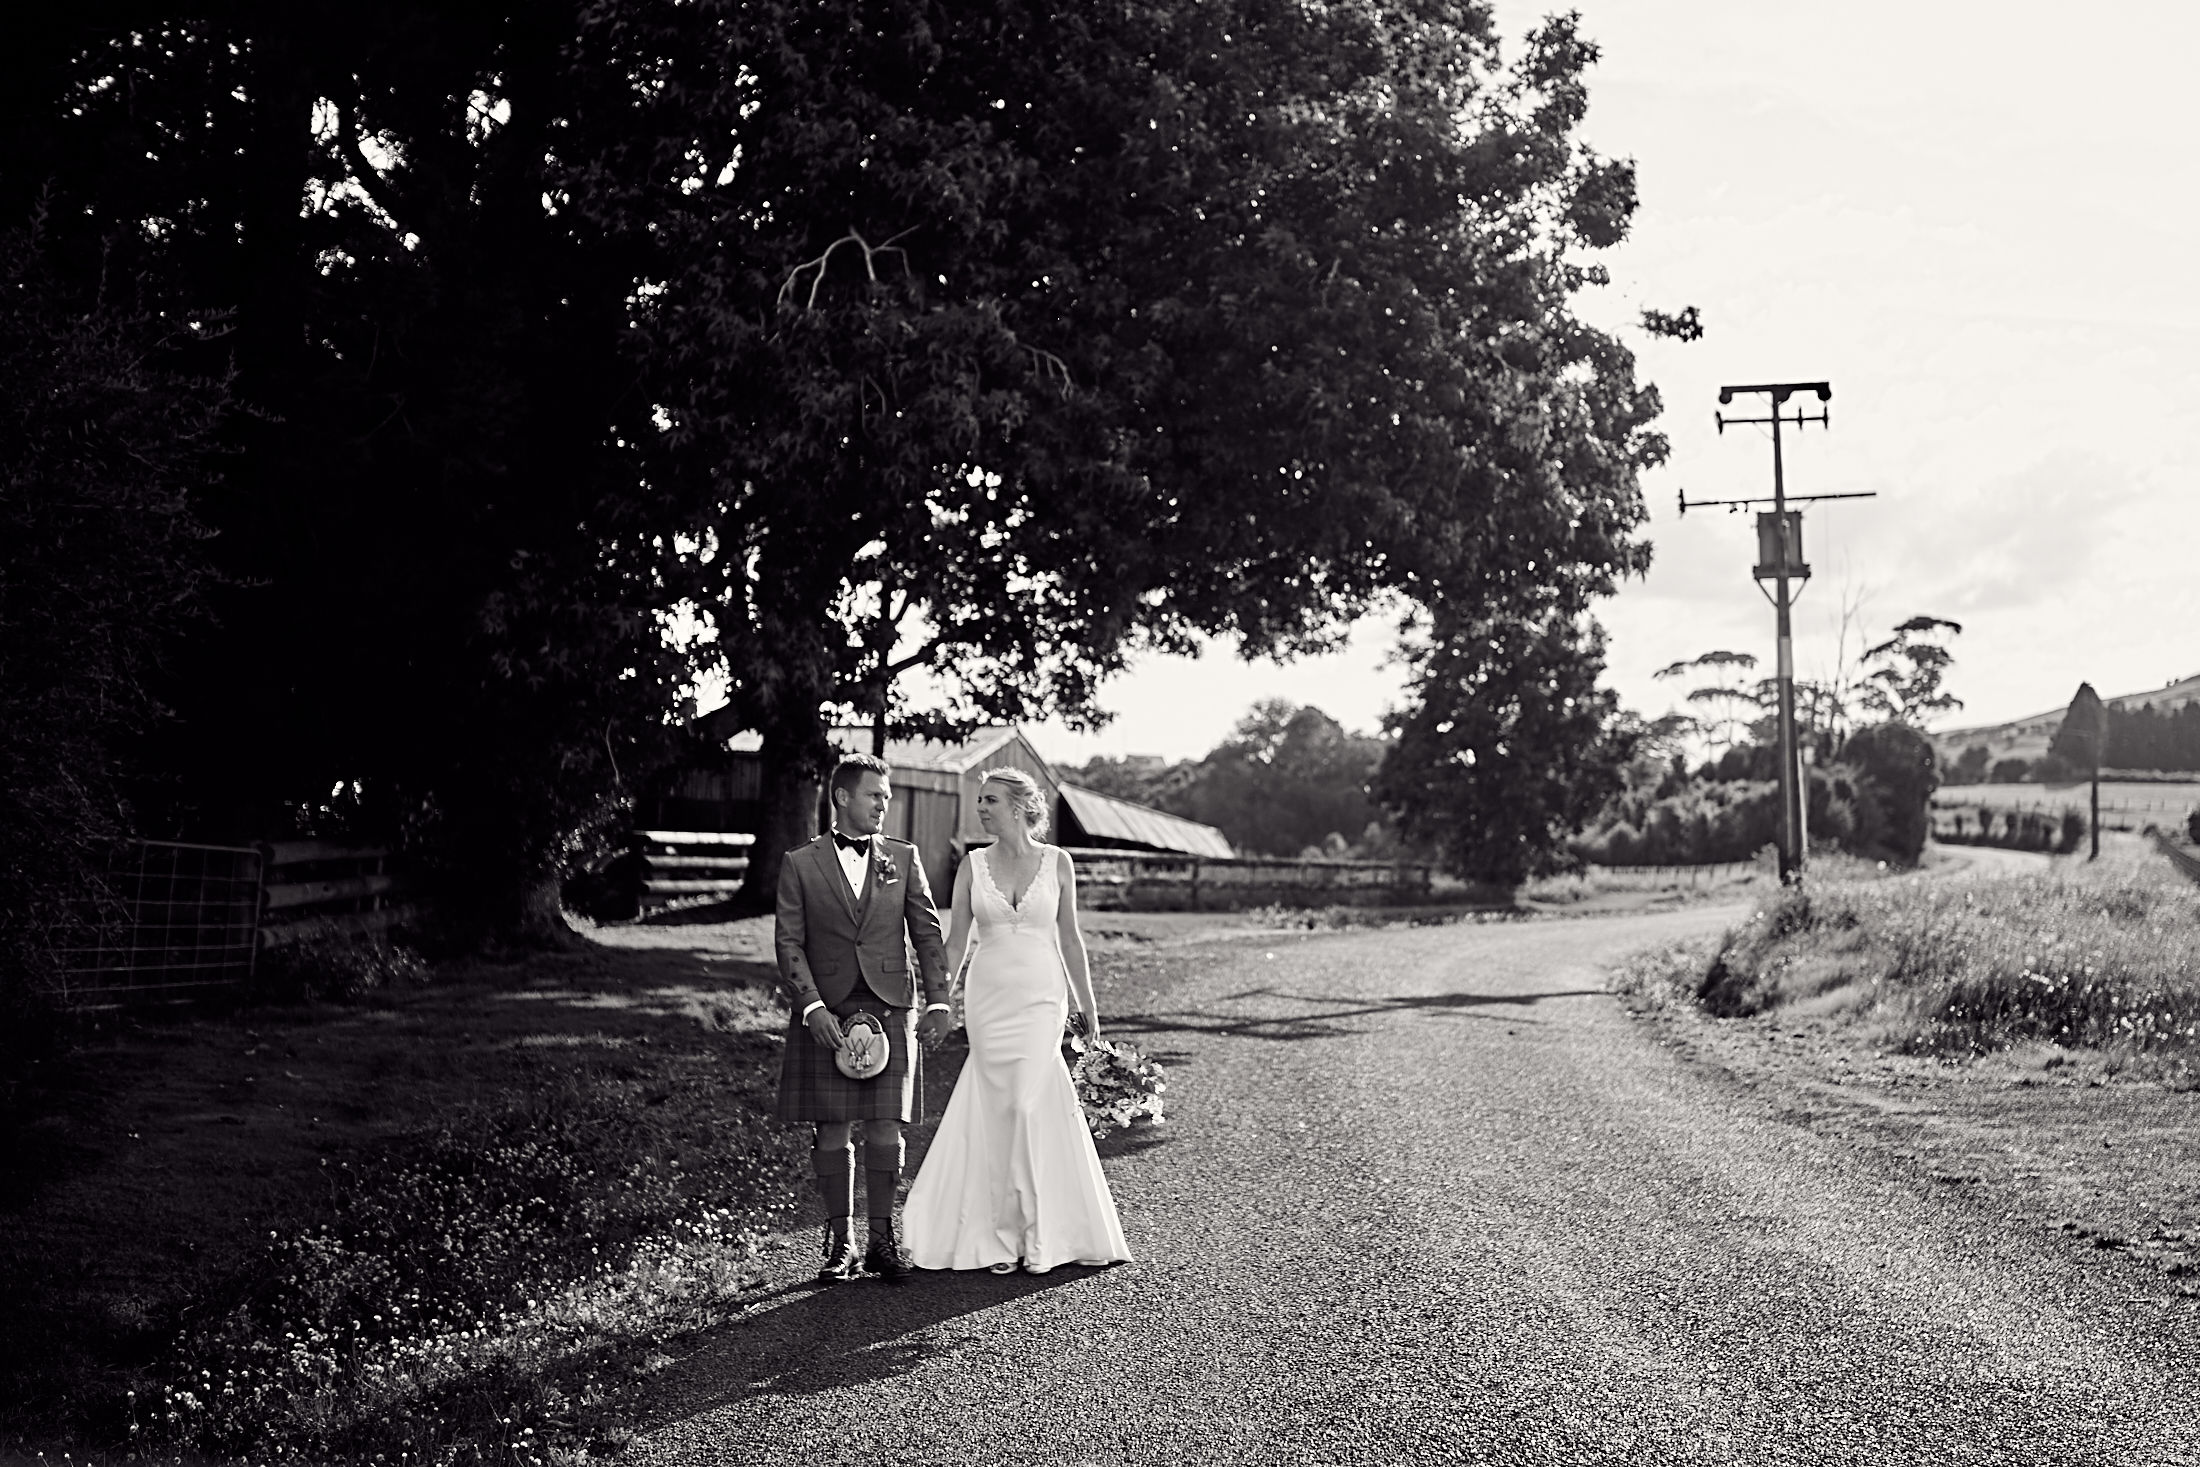 Couple on country road